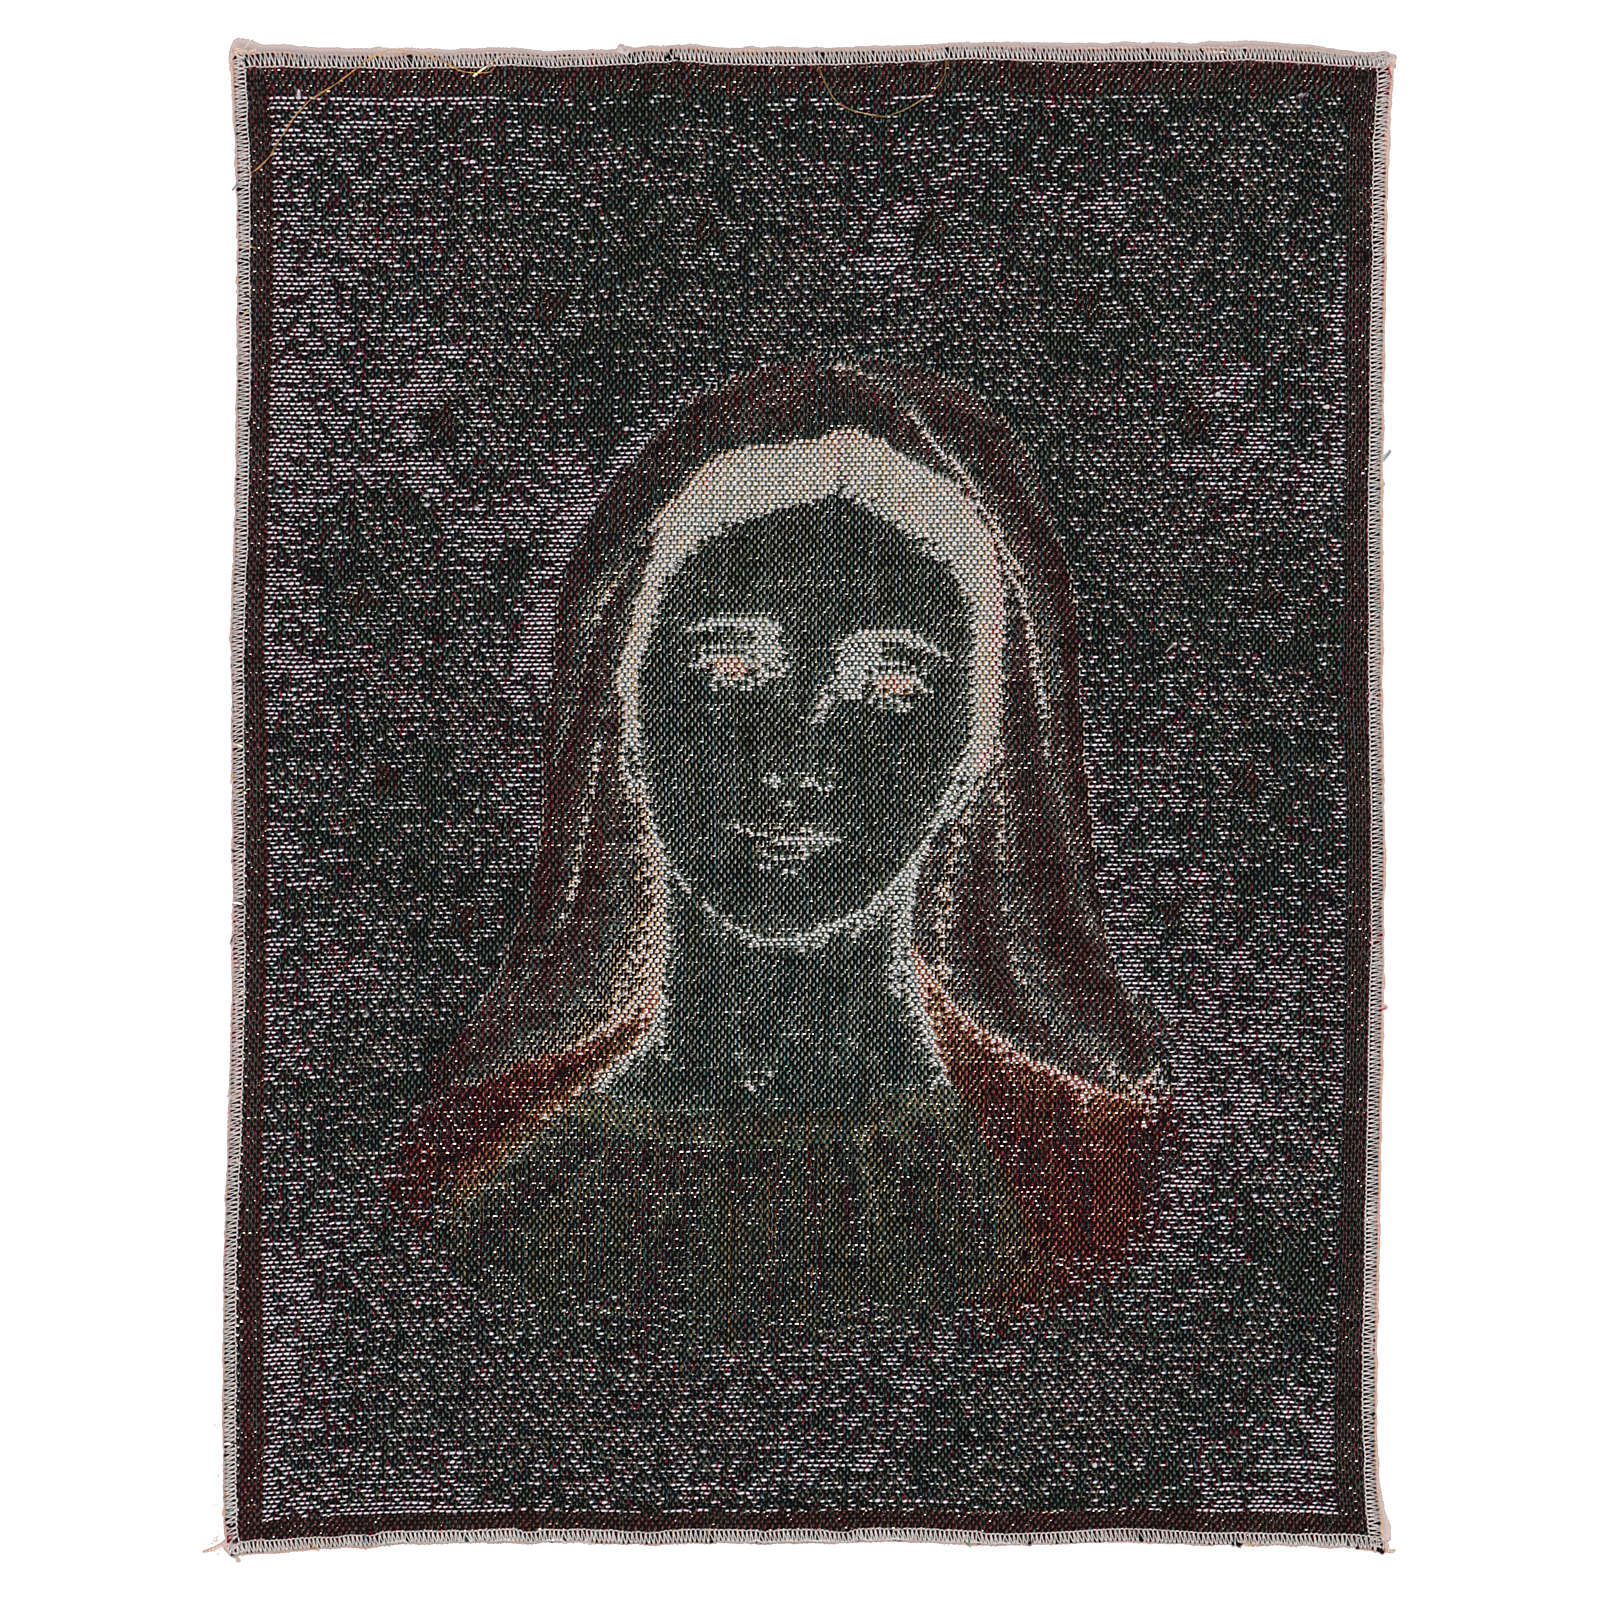 Our Lady of Medjugorje with stars tapestry 40x30 cm 3